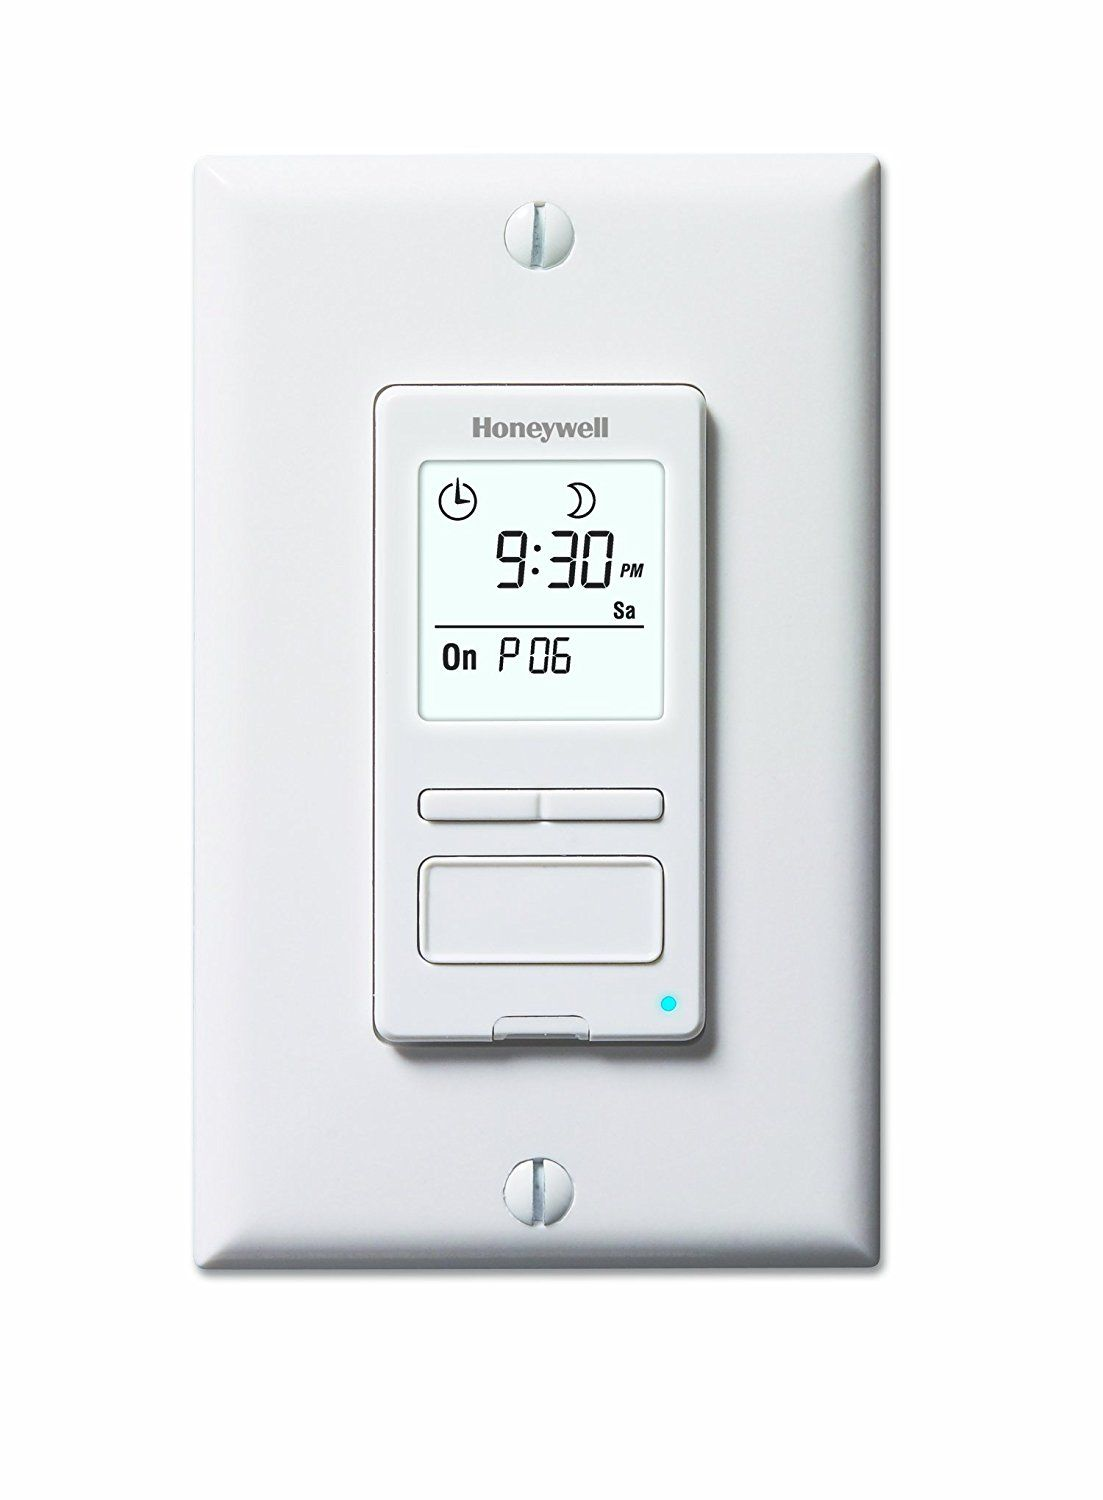 Amazon Com Honeywell Rpls540a Econoswitch Programmable Timer Switch White Requires 40 W Minimum Home Improveme With Images Light Switch Timer Digital Timer Solar Time